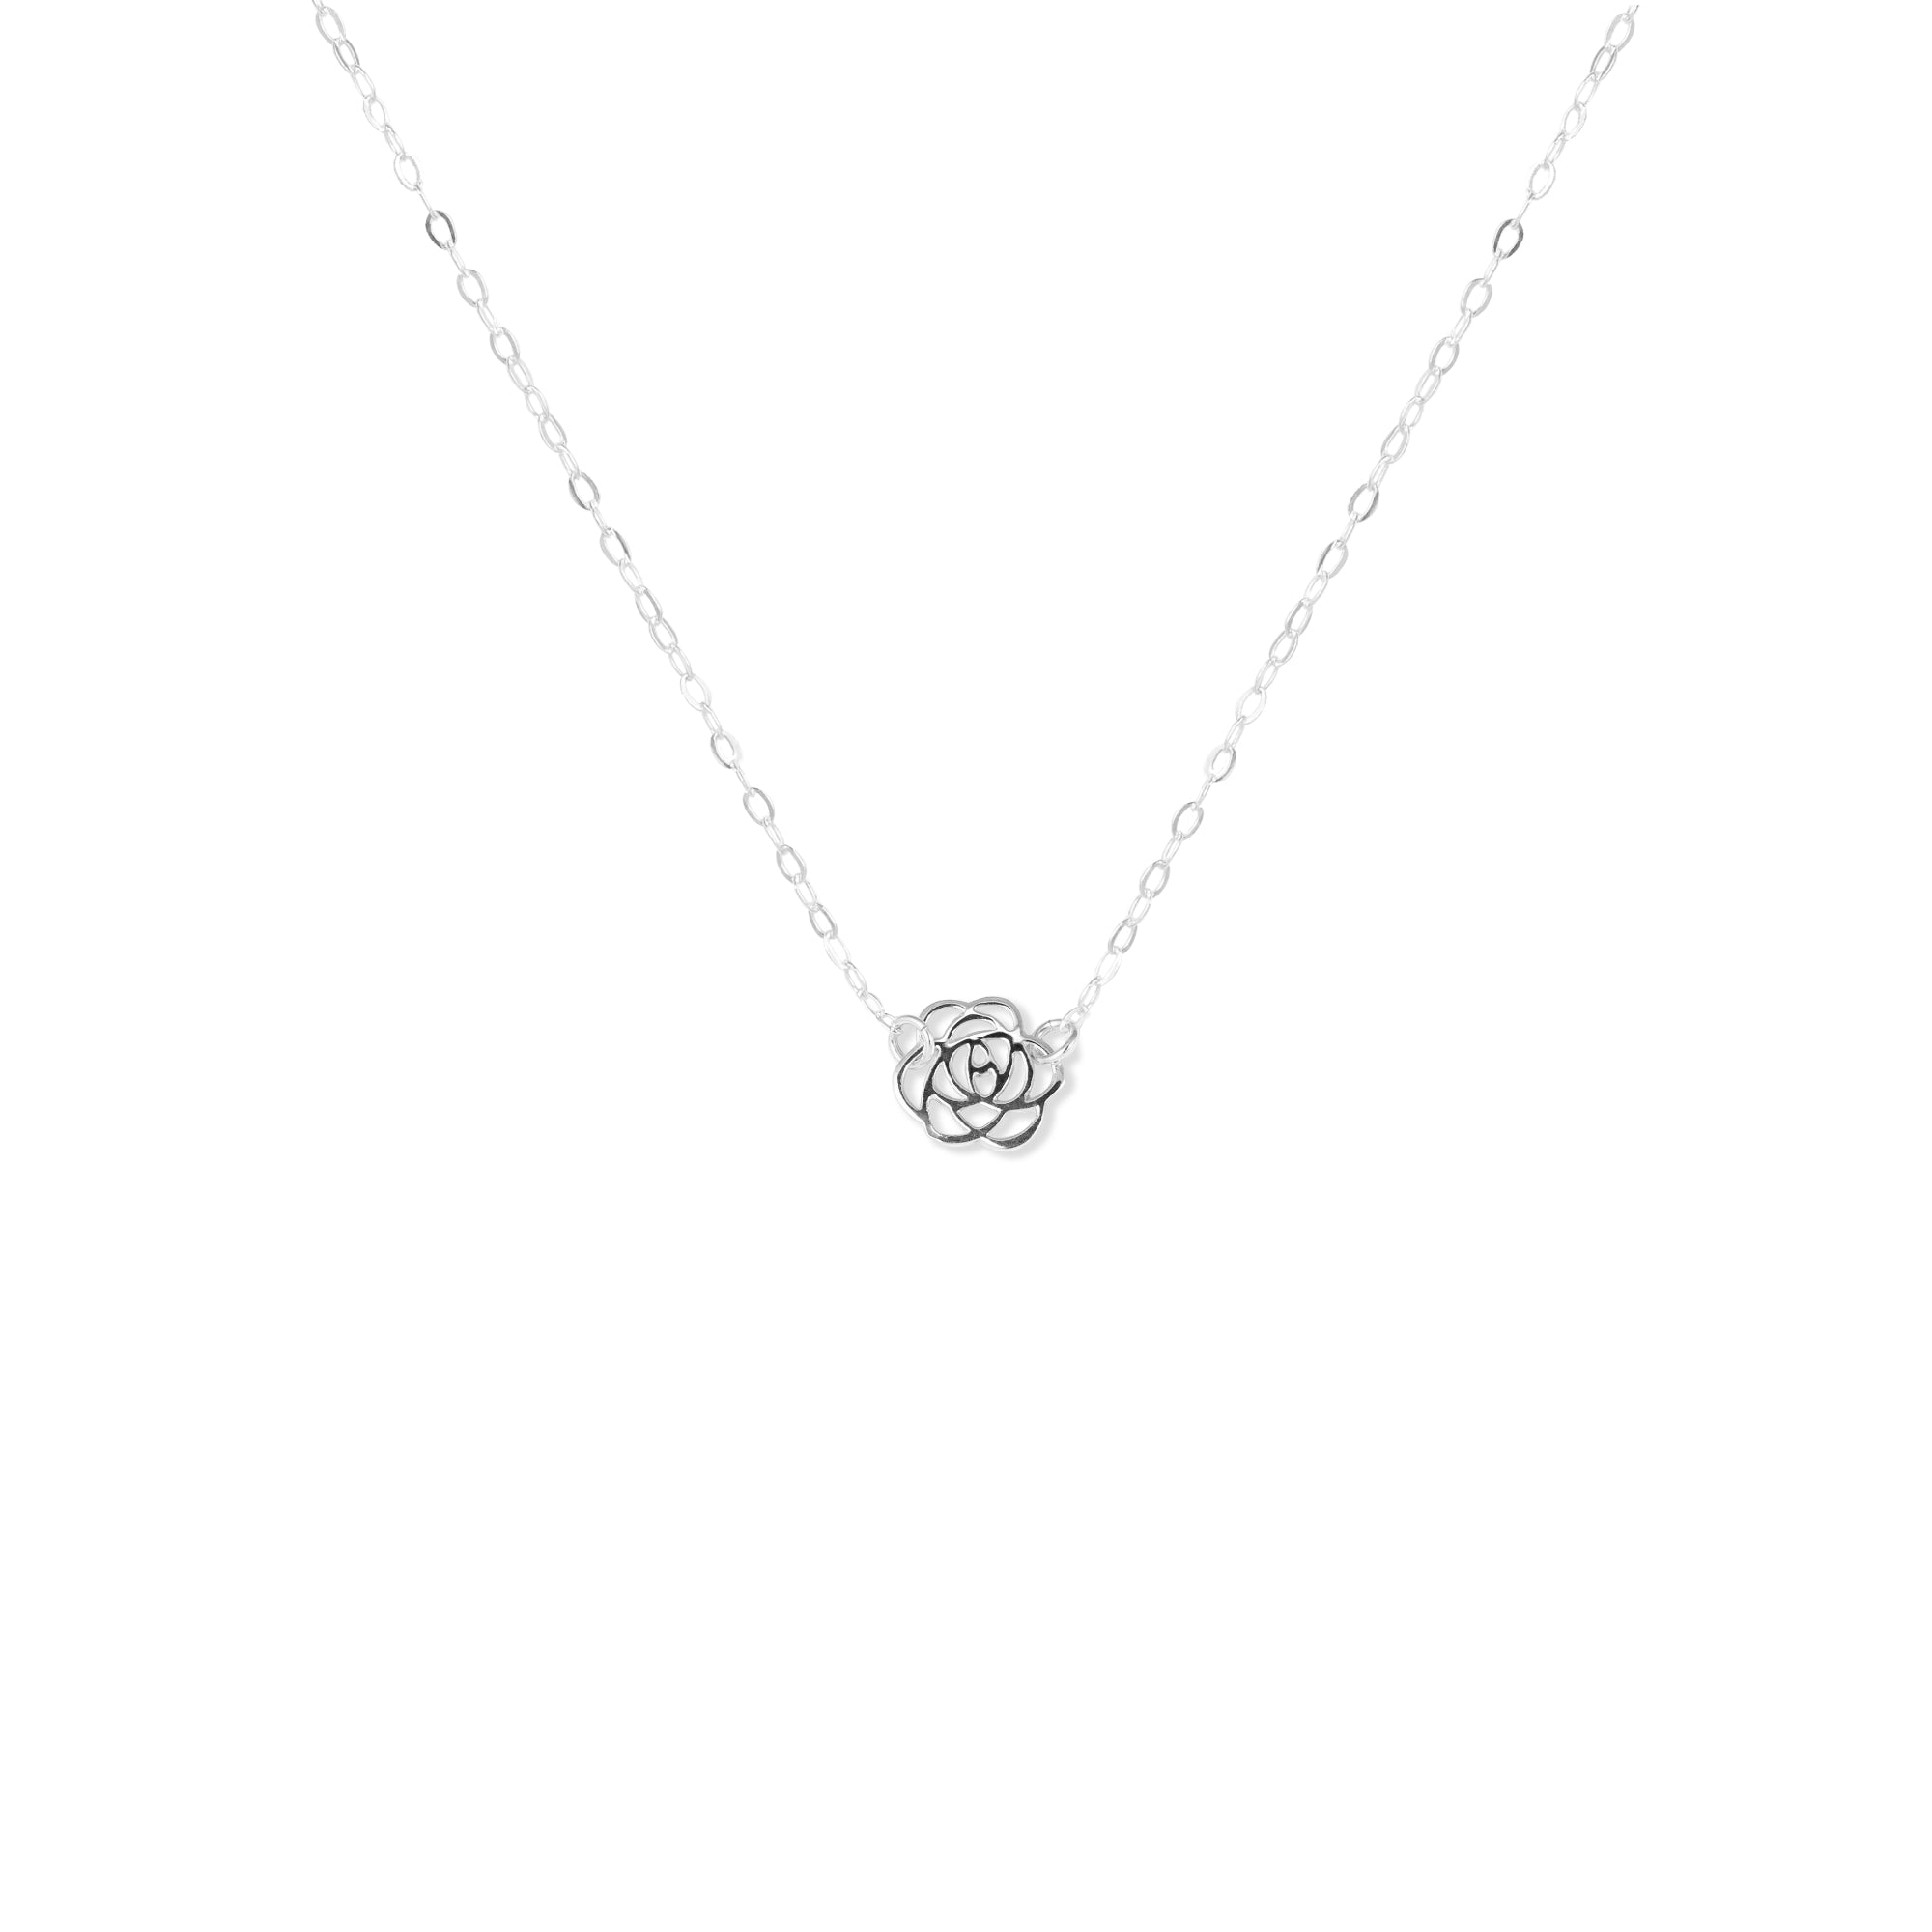 Close-up of Silver Rose Pendant Necklace 'Thank You' on White Background Photo by Asha Blooms